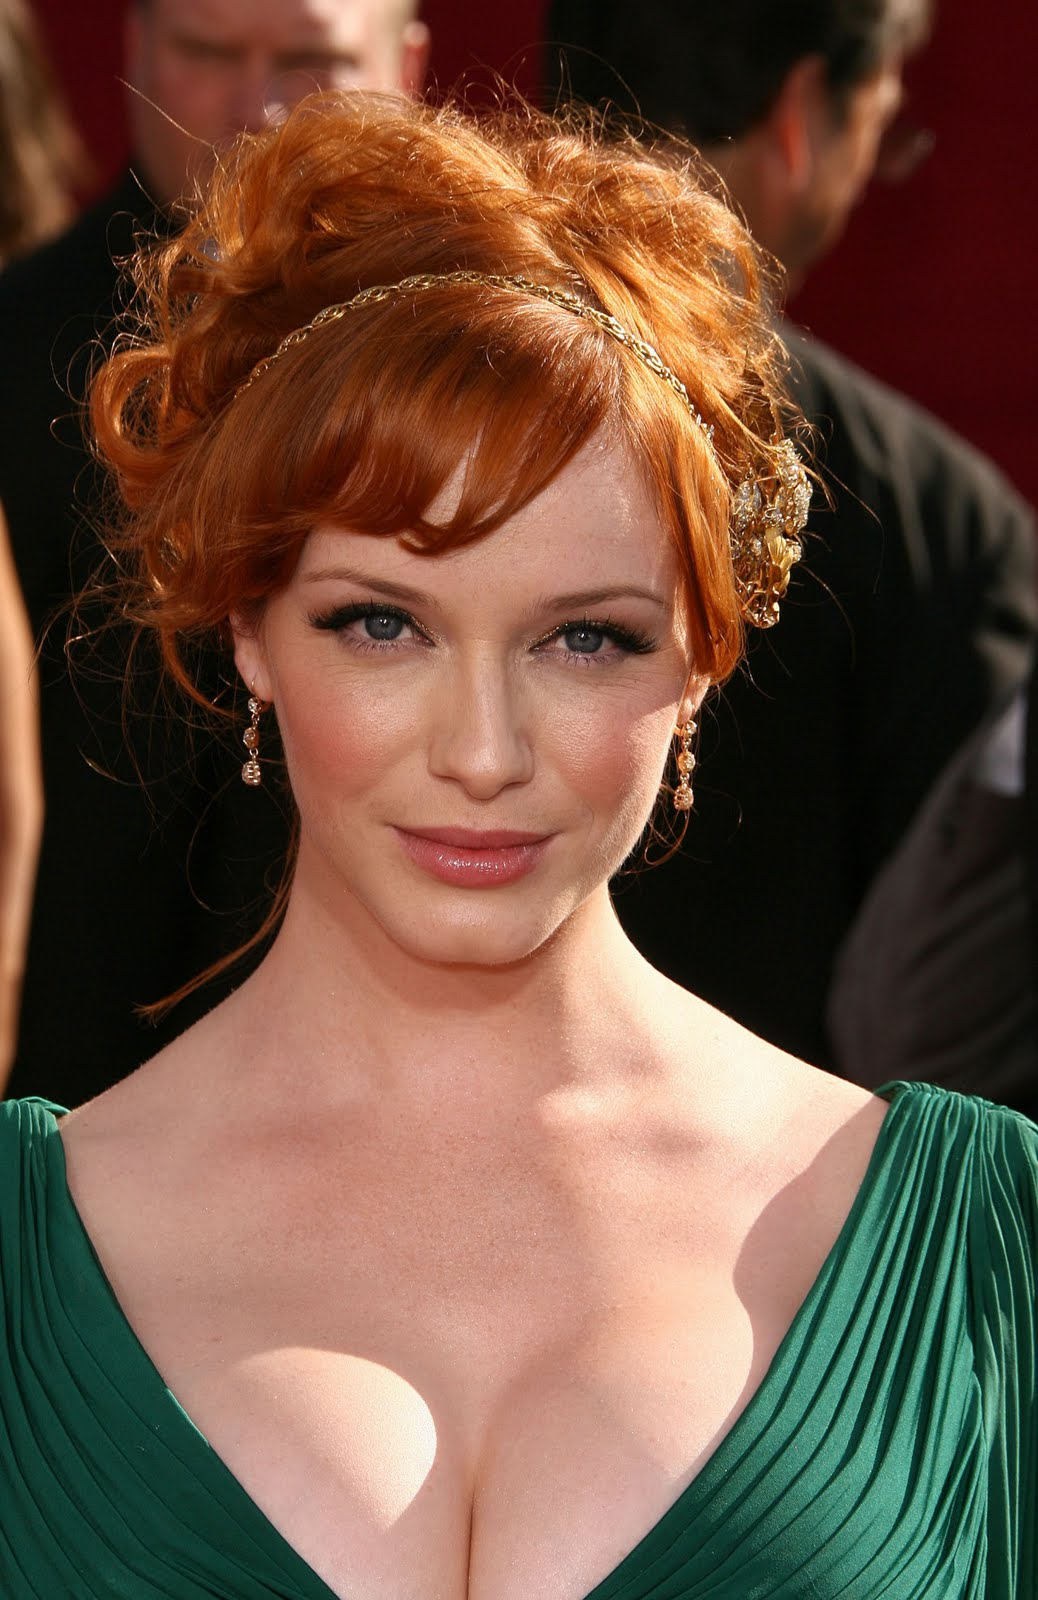 Christina Hendricks Boob